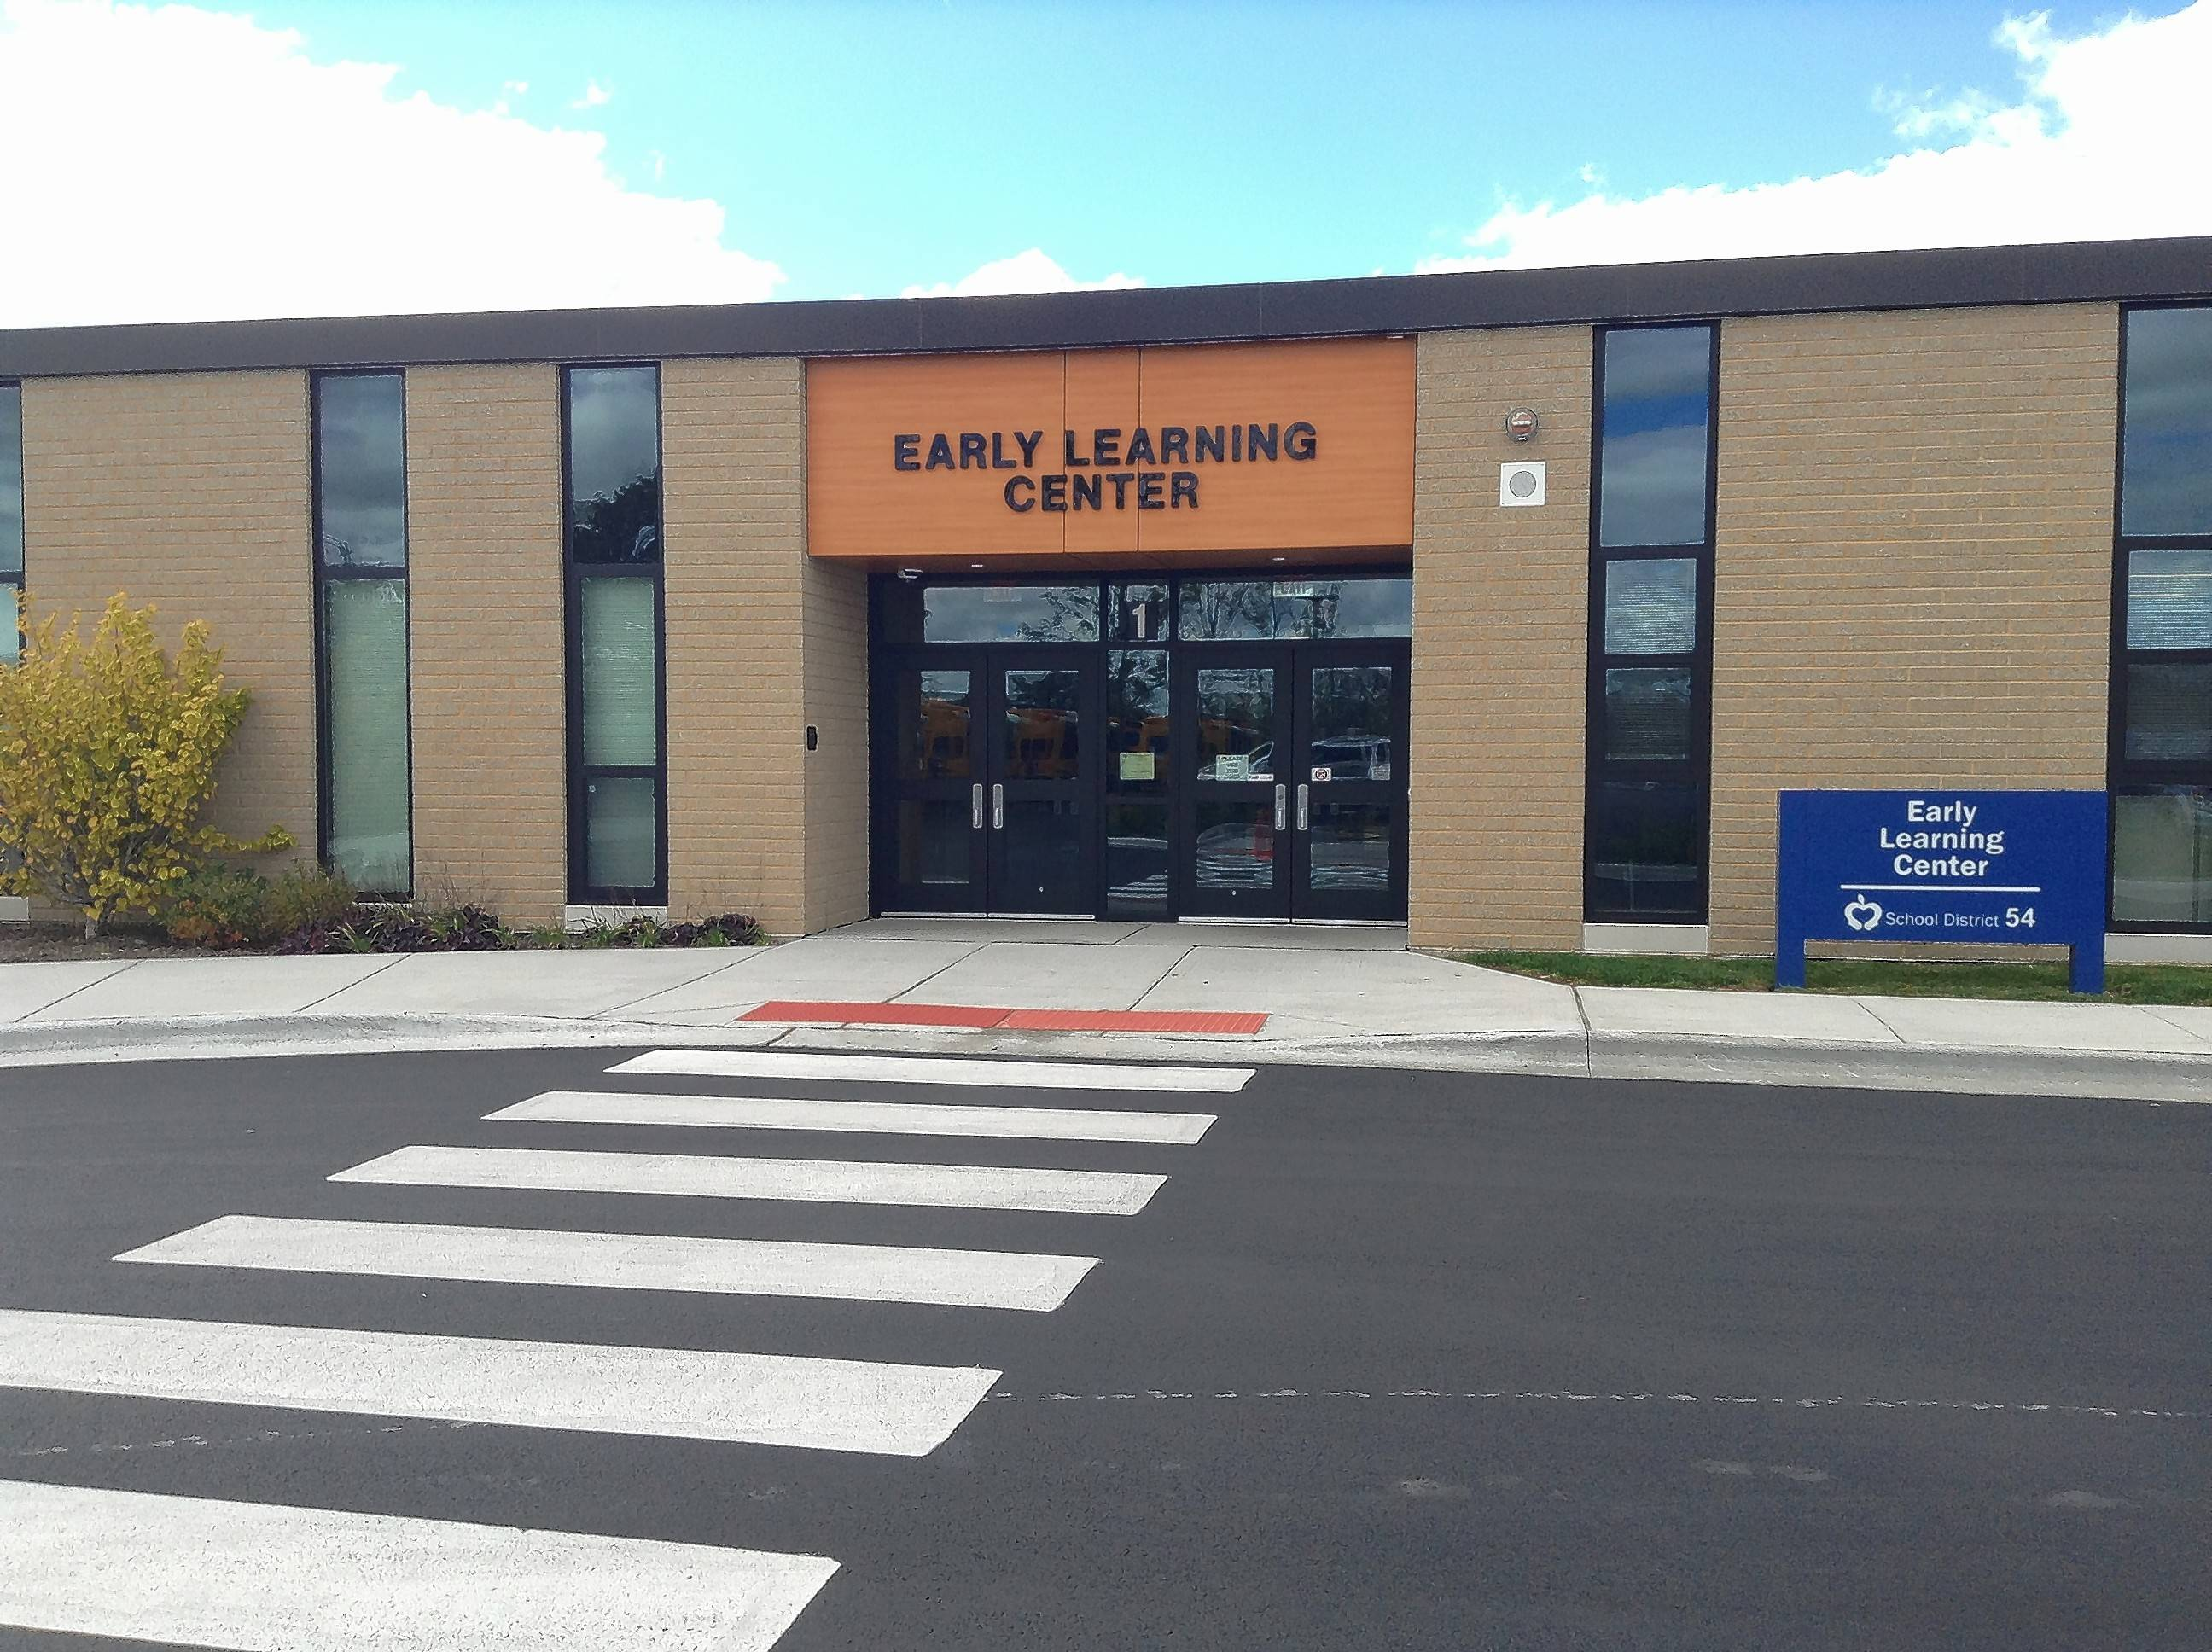 Schaumburg Township Elementary District 54 school board members Thursday discussed the first year of operation of the district's Early Learning Center, which opened next to the administration building on Schaumburg Road in August 2014.